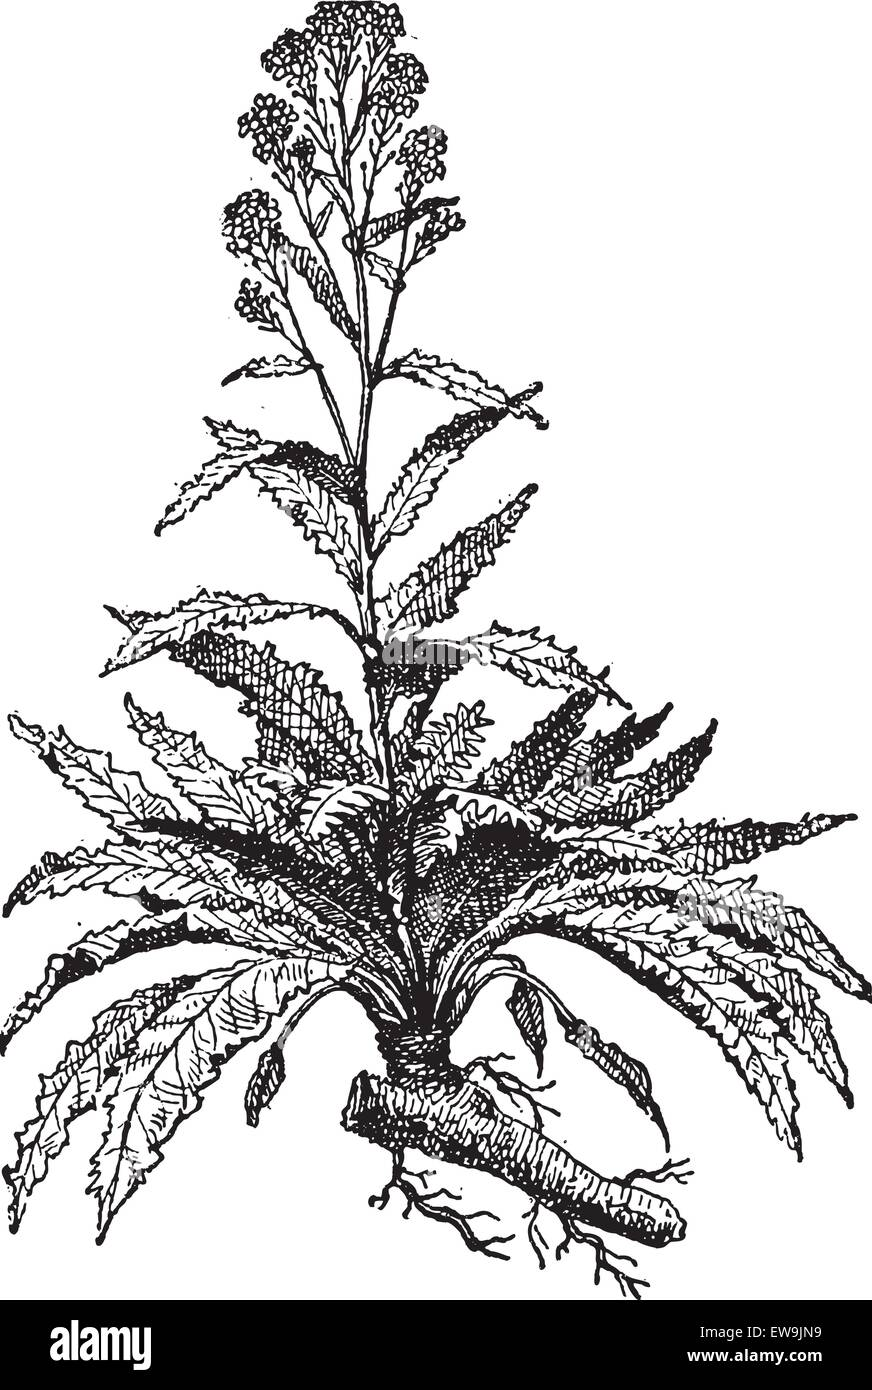 Old engraved illustration of Horseradish or Armoracia rusticana or  Cochlearia armoracia isolated on a white background. - Stock Image